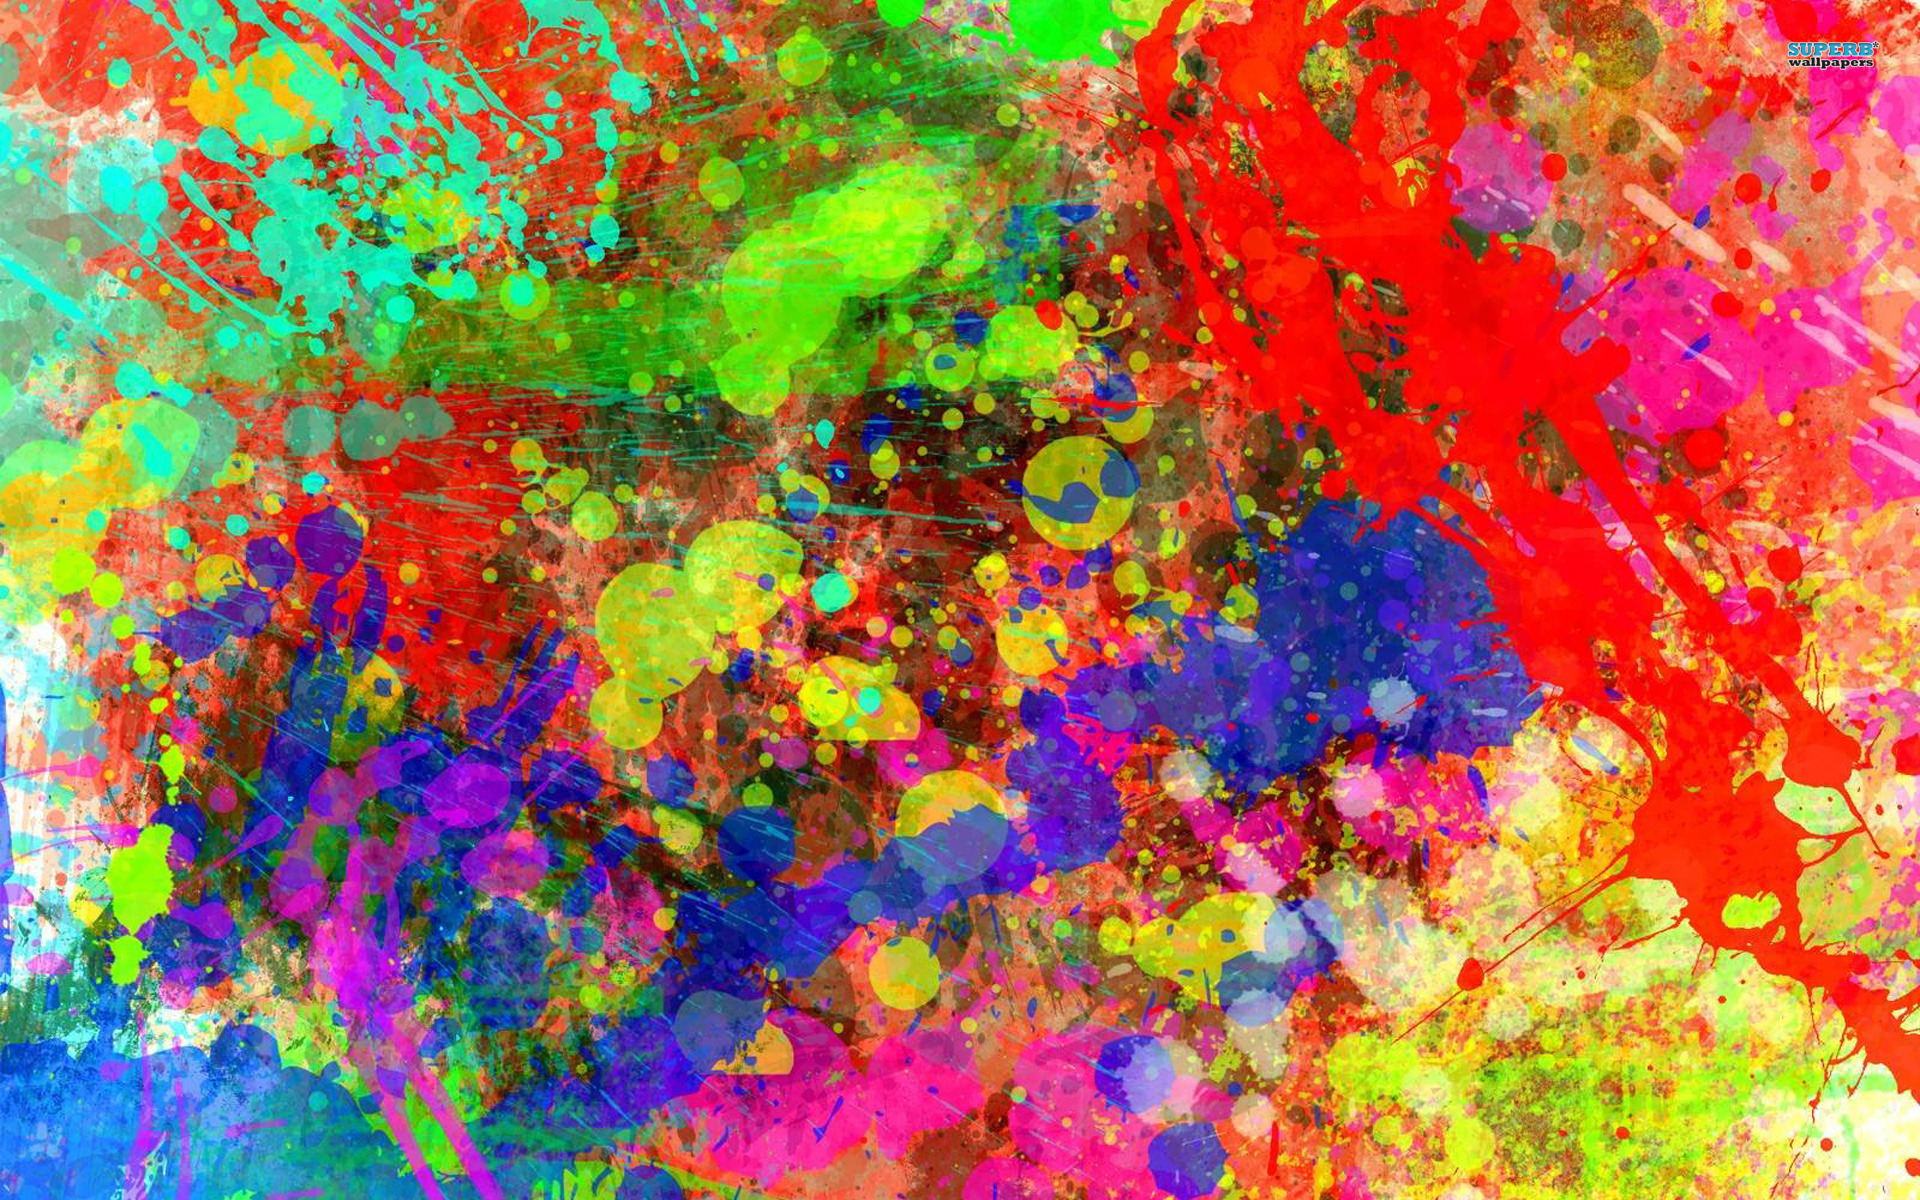 Paint splash wallpaper 1920x1200 jpg